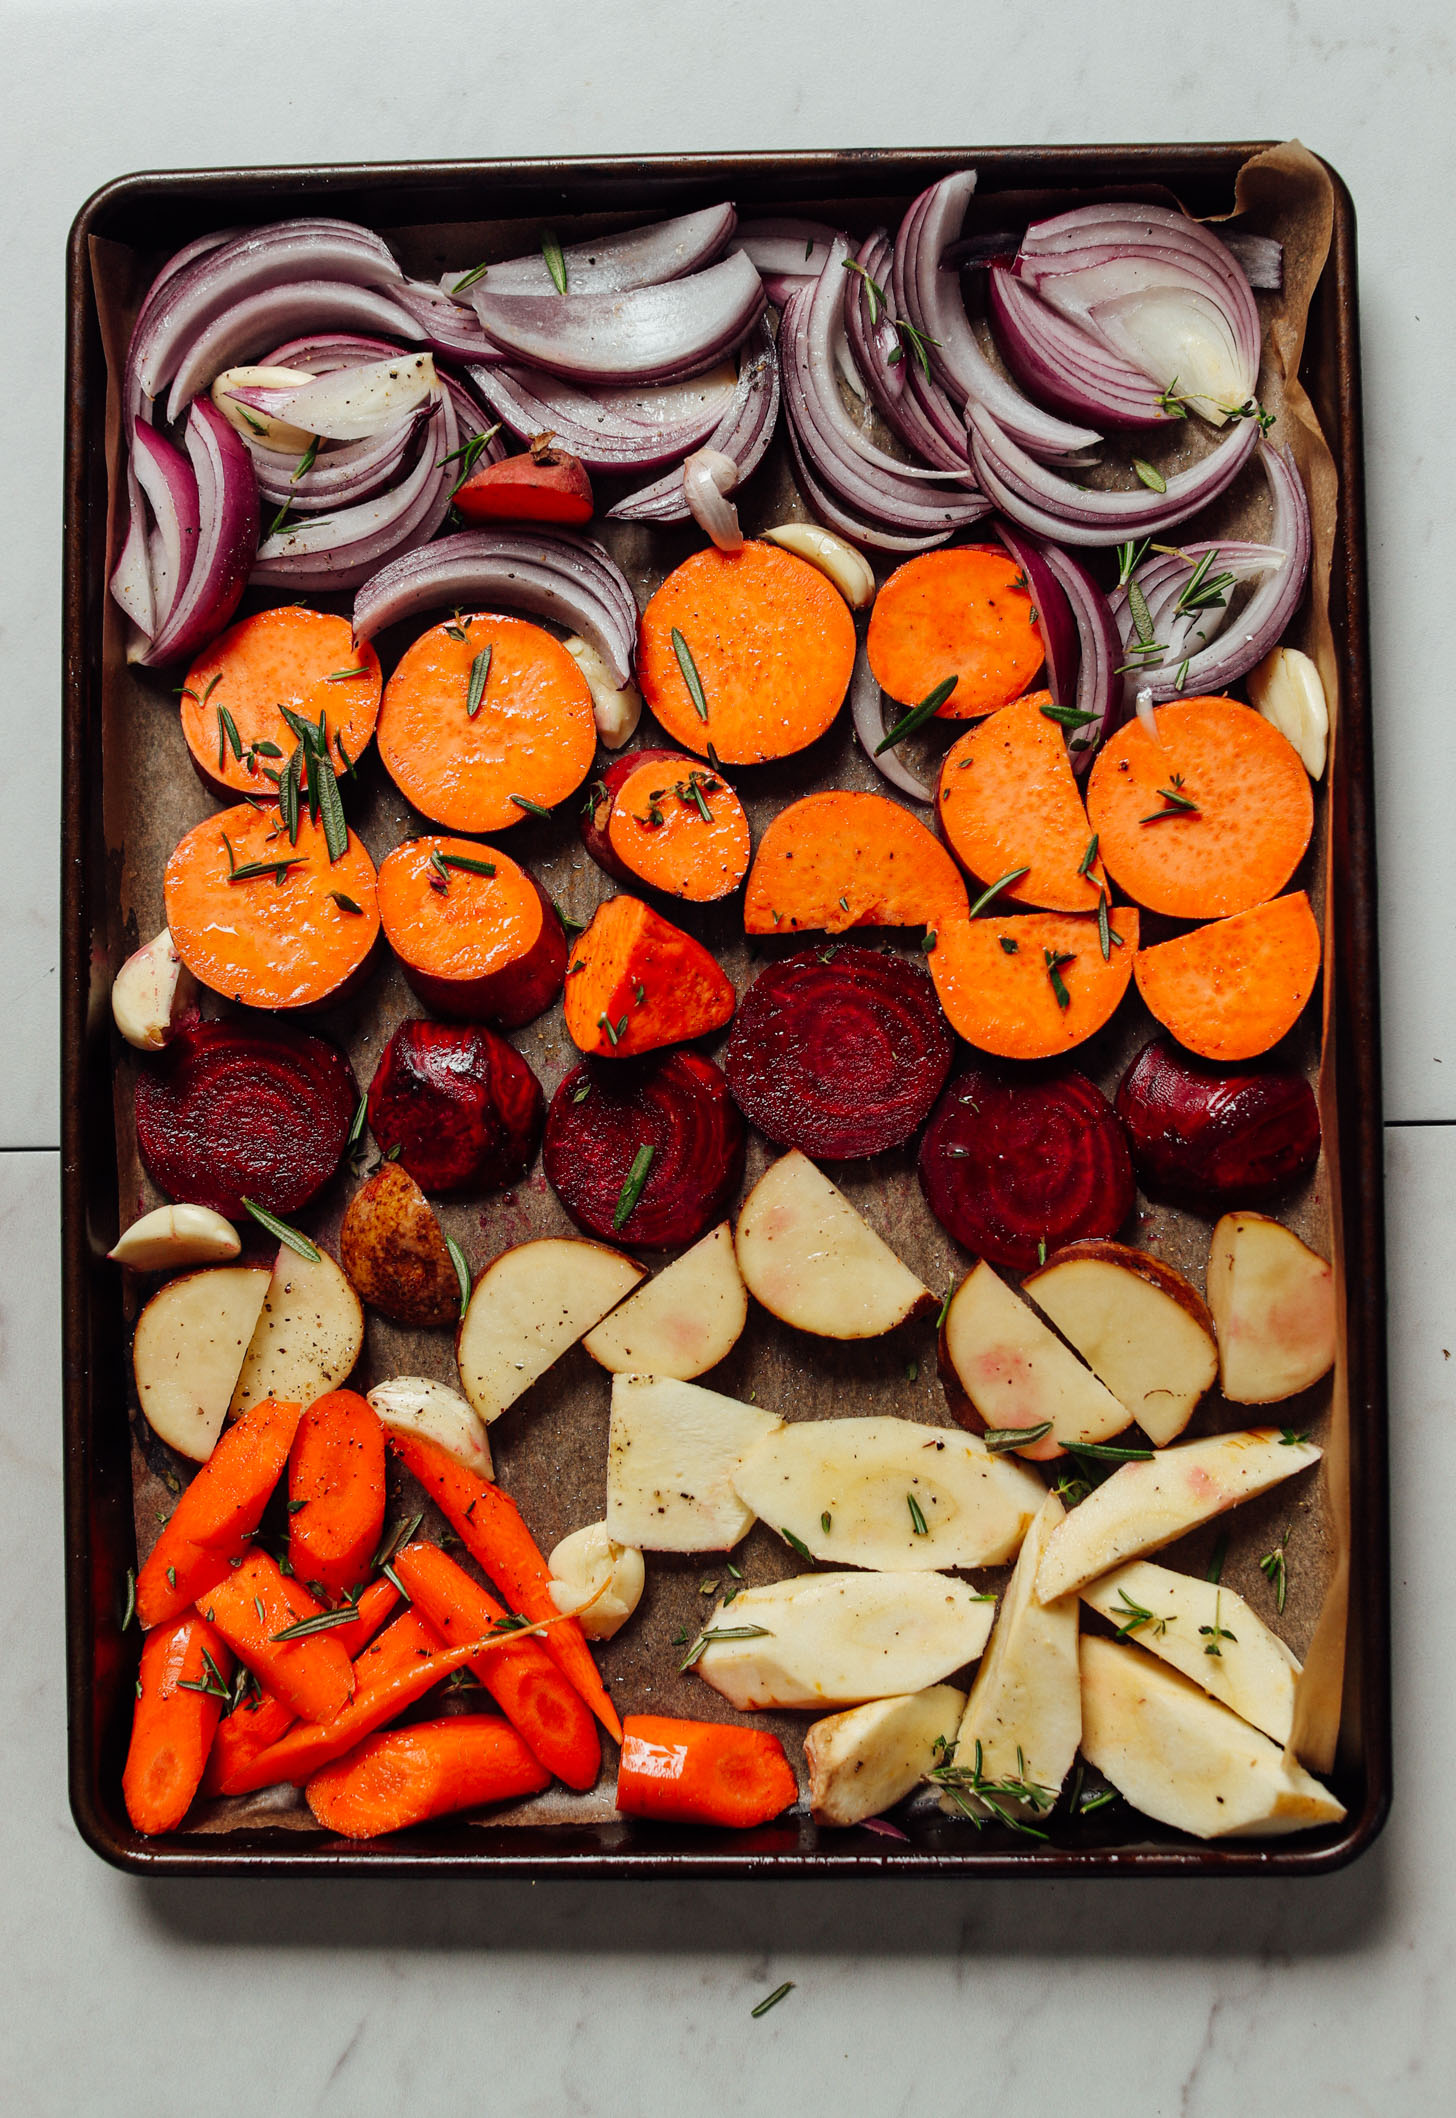 Parchment-lined baking sheet filled with sliced vegetables and herbs for roasting